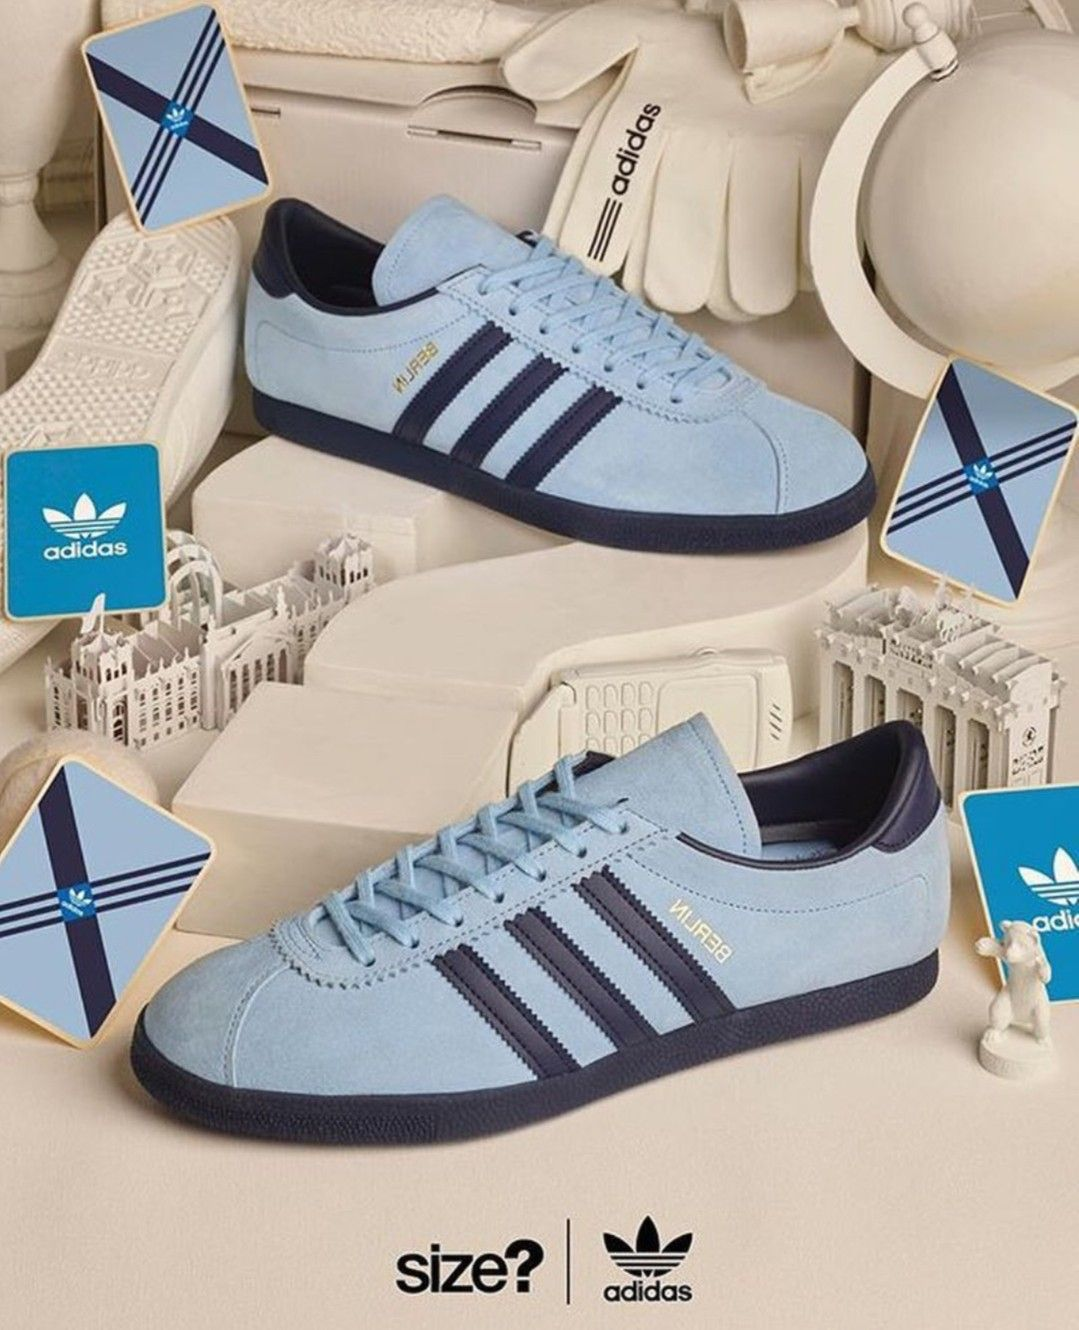 0ed2e0cc54566 Coming soon....Berlin in reverse colourway... Adidas Samba